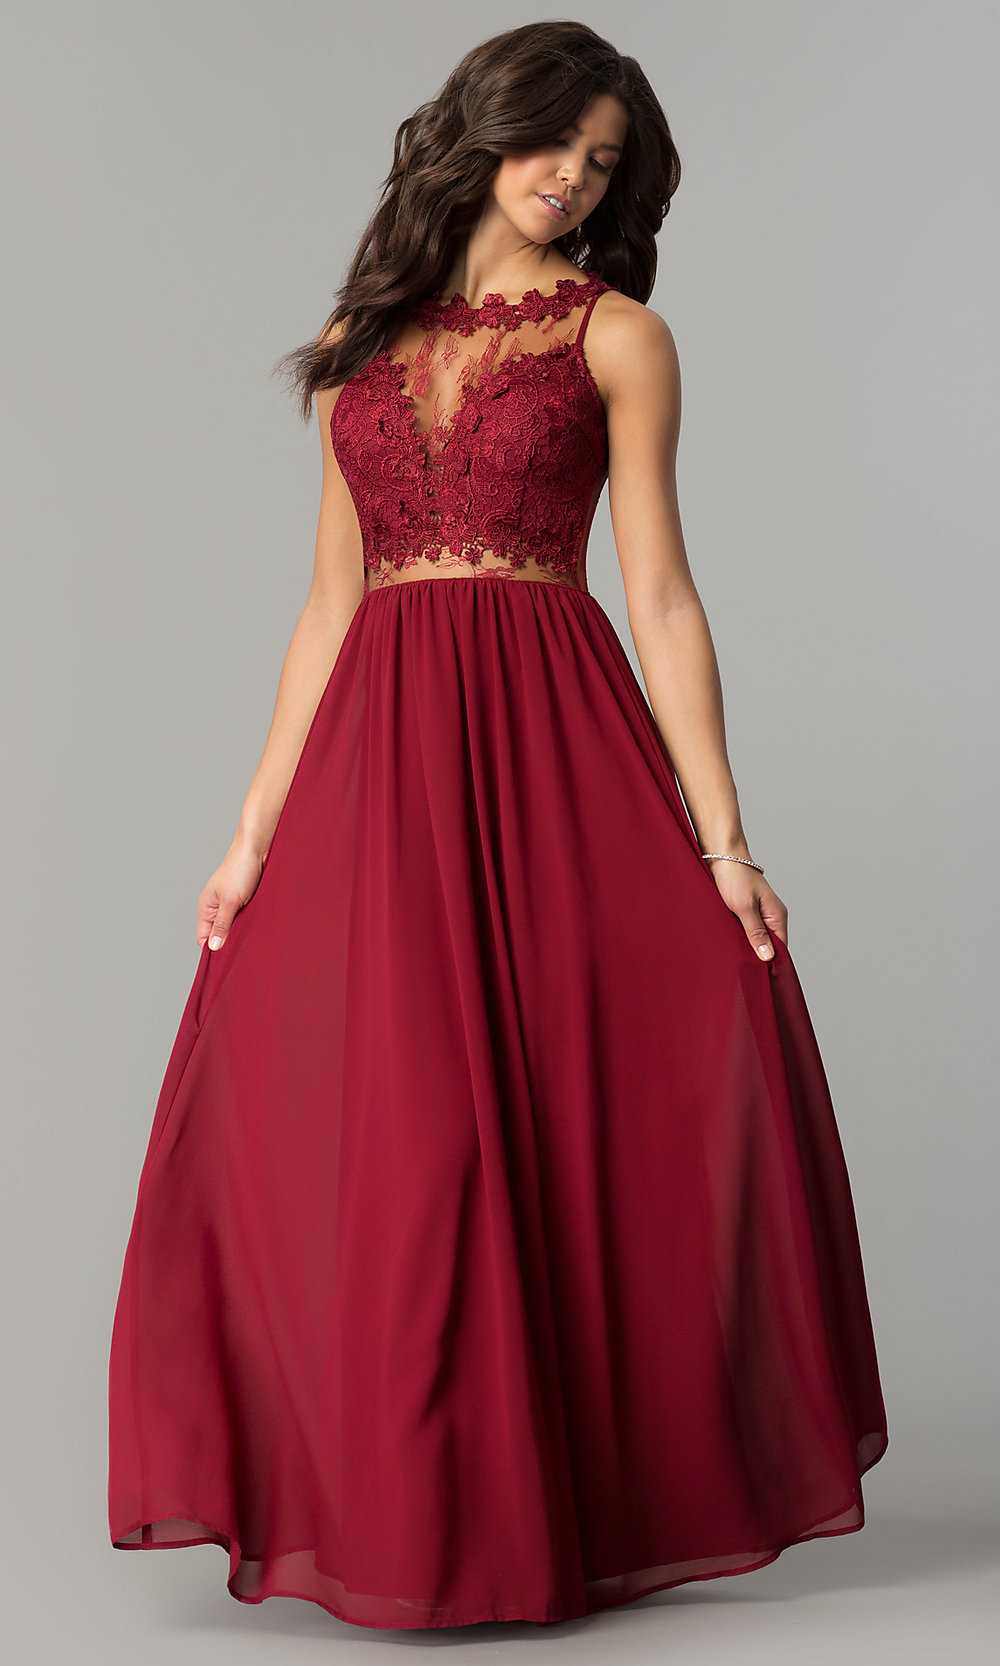 Long Lace-Bodice Wine Red Prom Dress - PromGirlRed Dresses